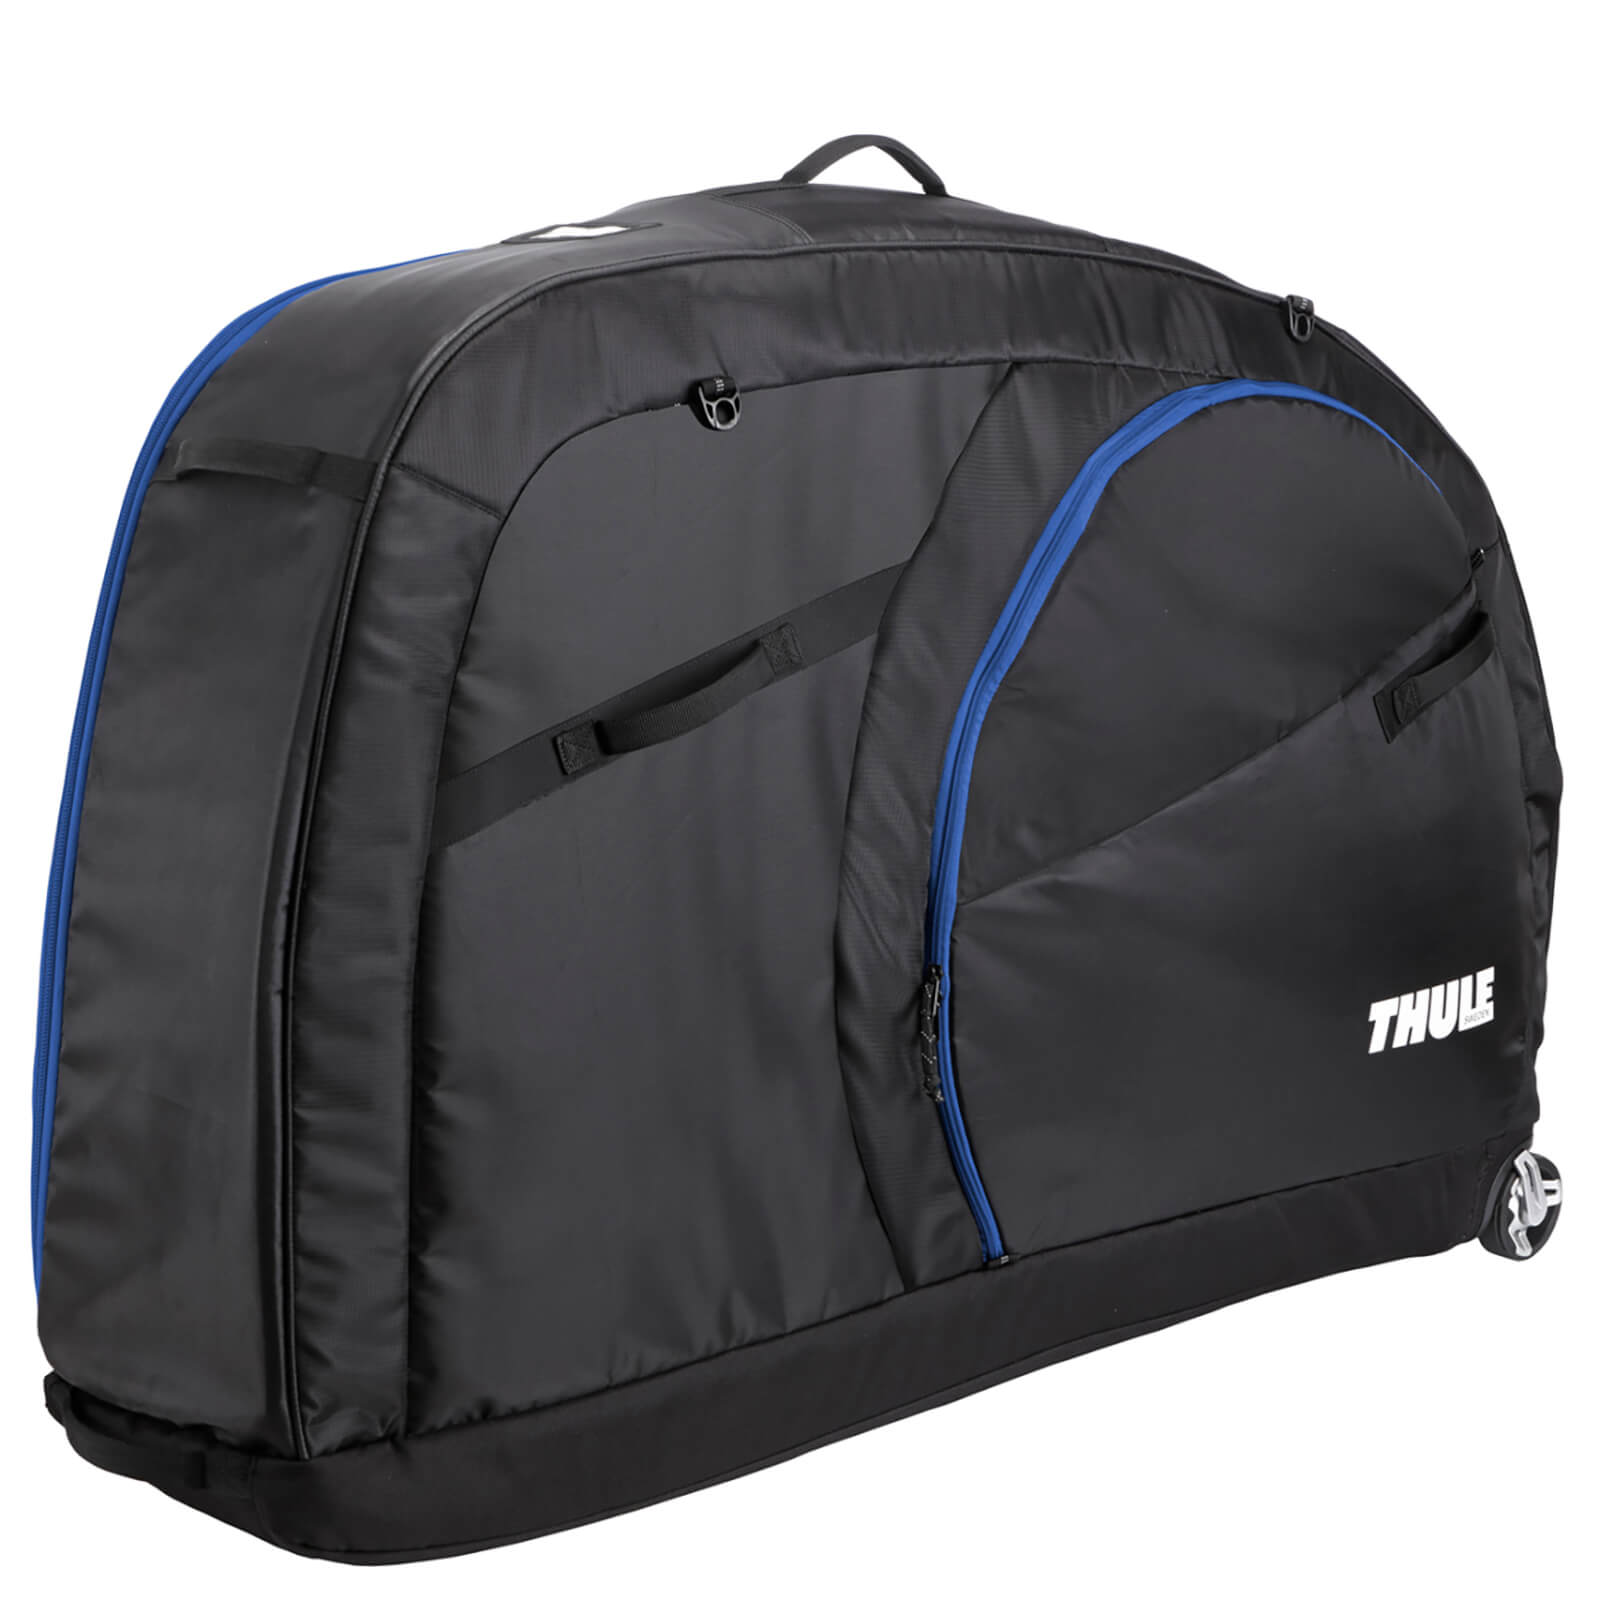 Thule RoundTrip Traveller Bike Case | Cykelkuffert